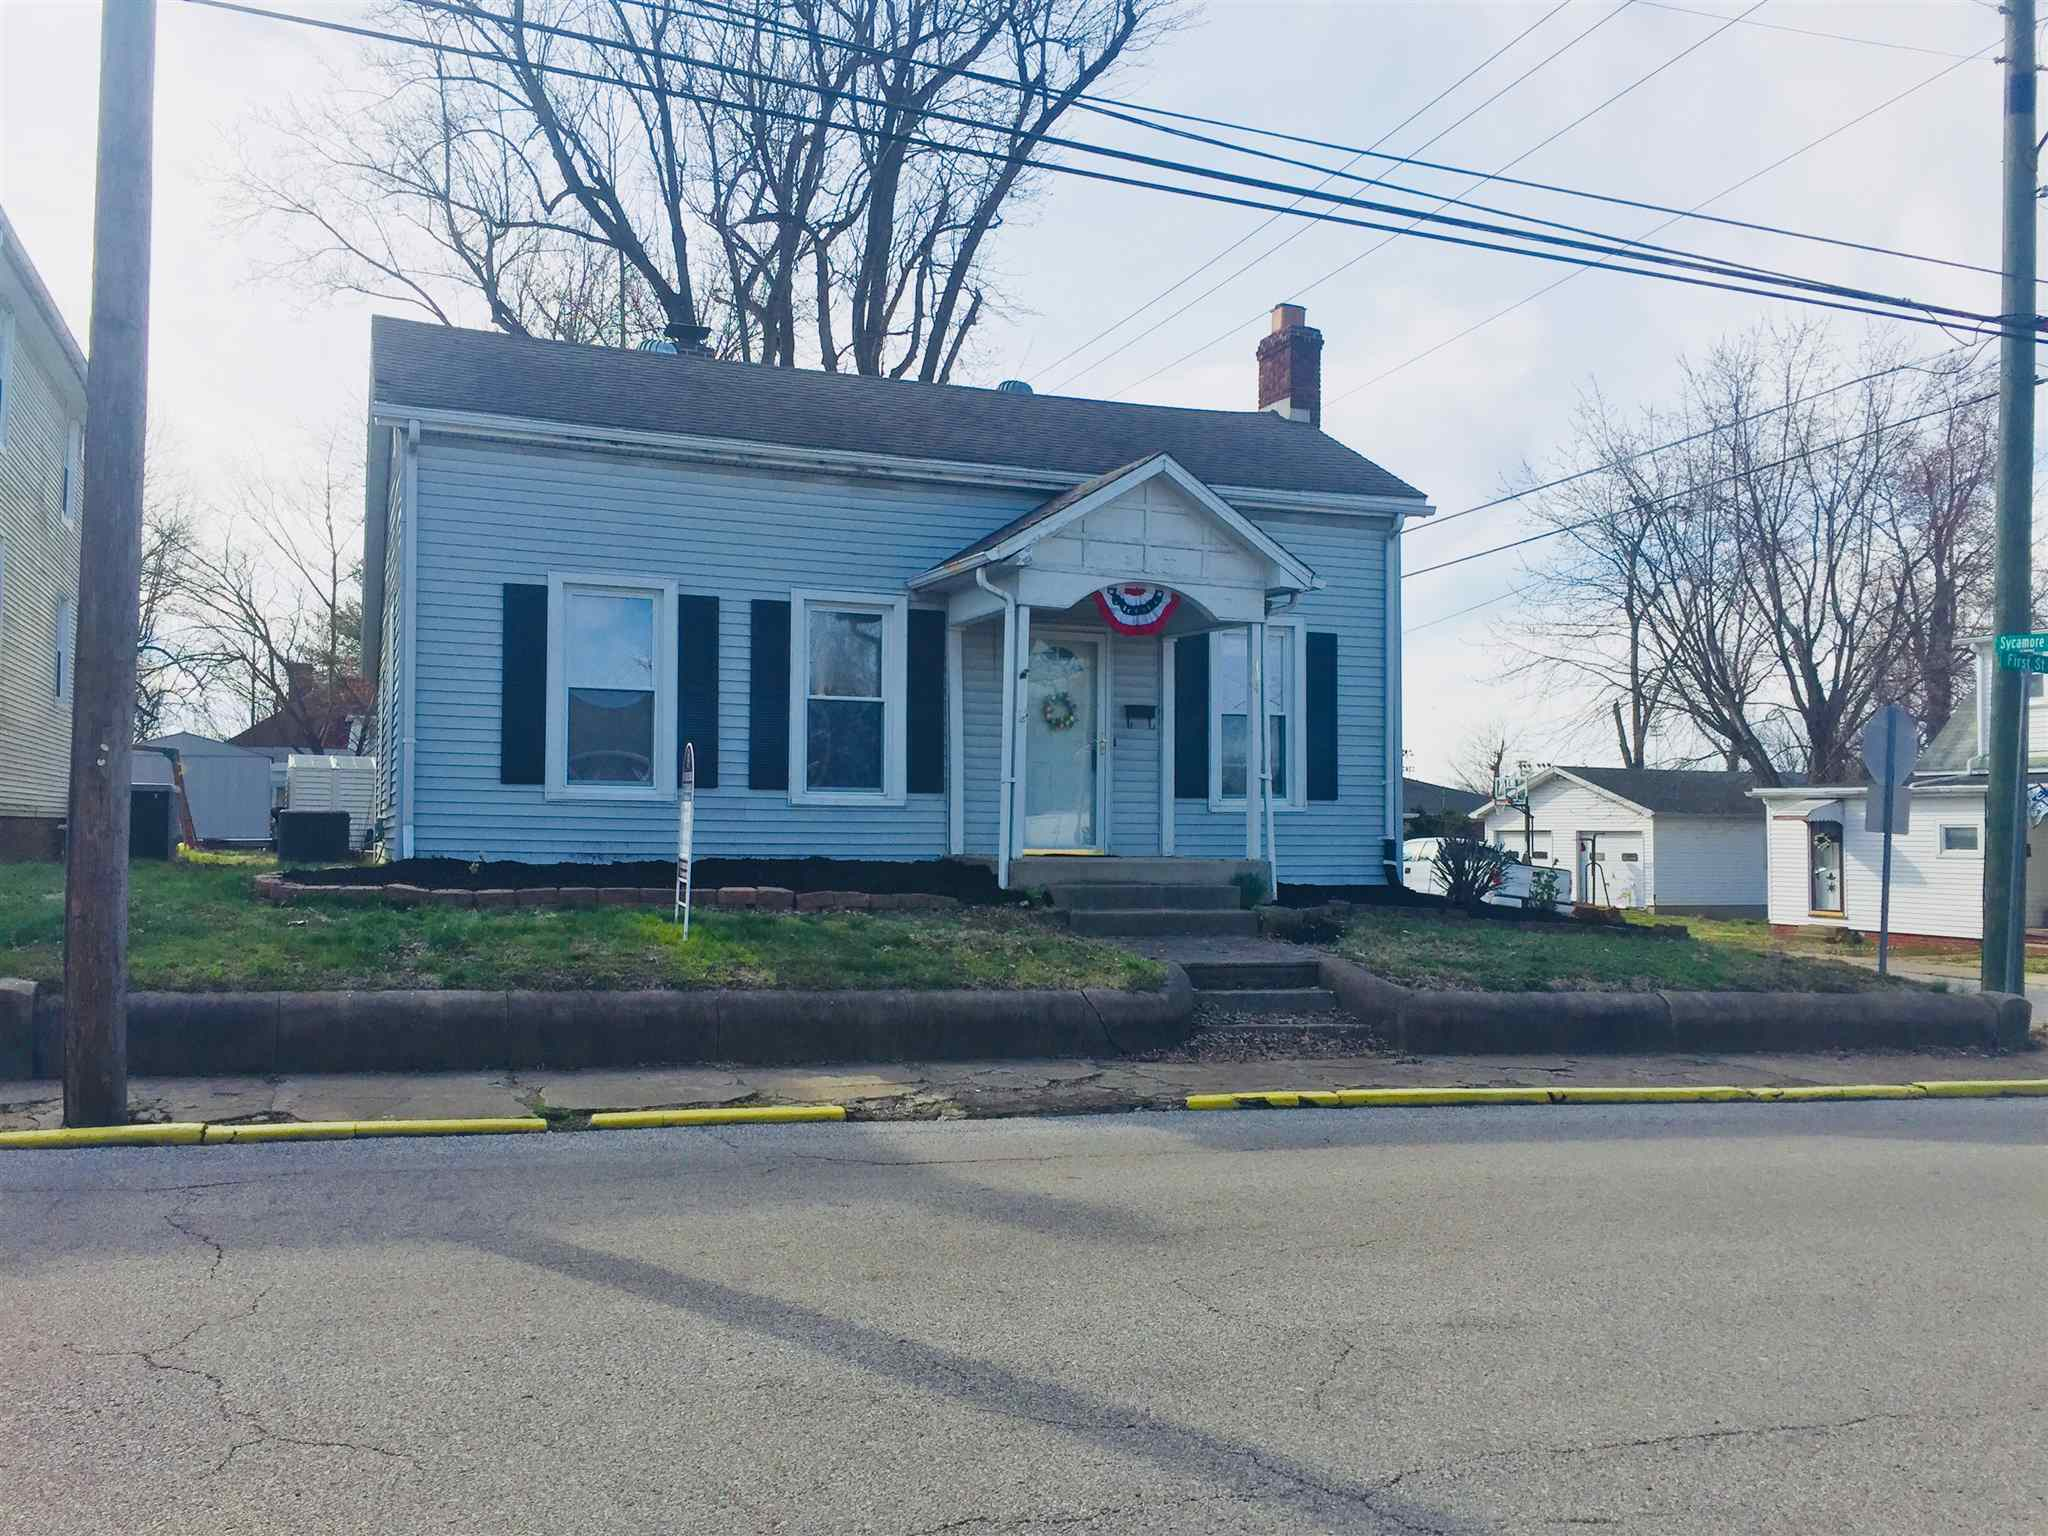 124 N First St, Boonville, IN 47601